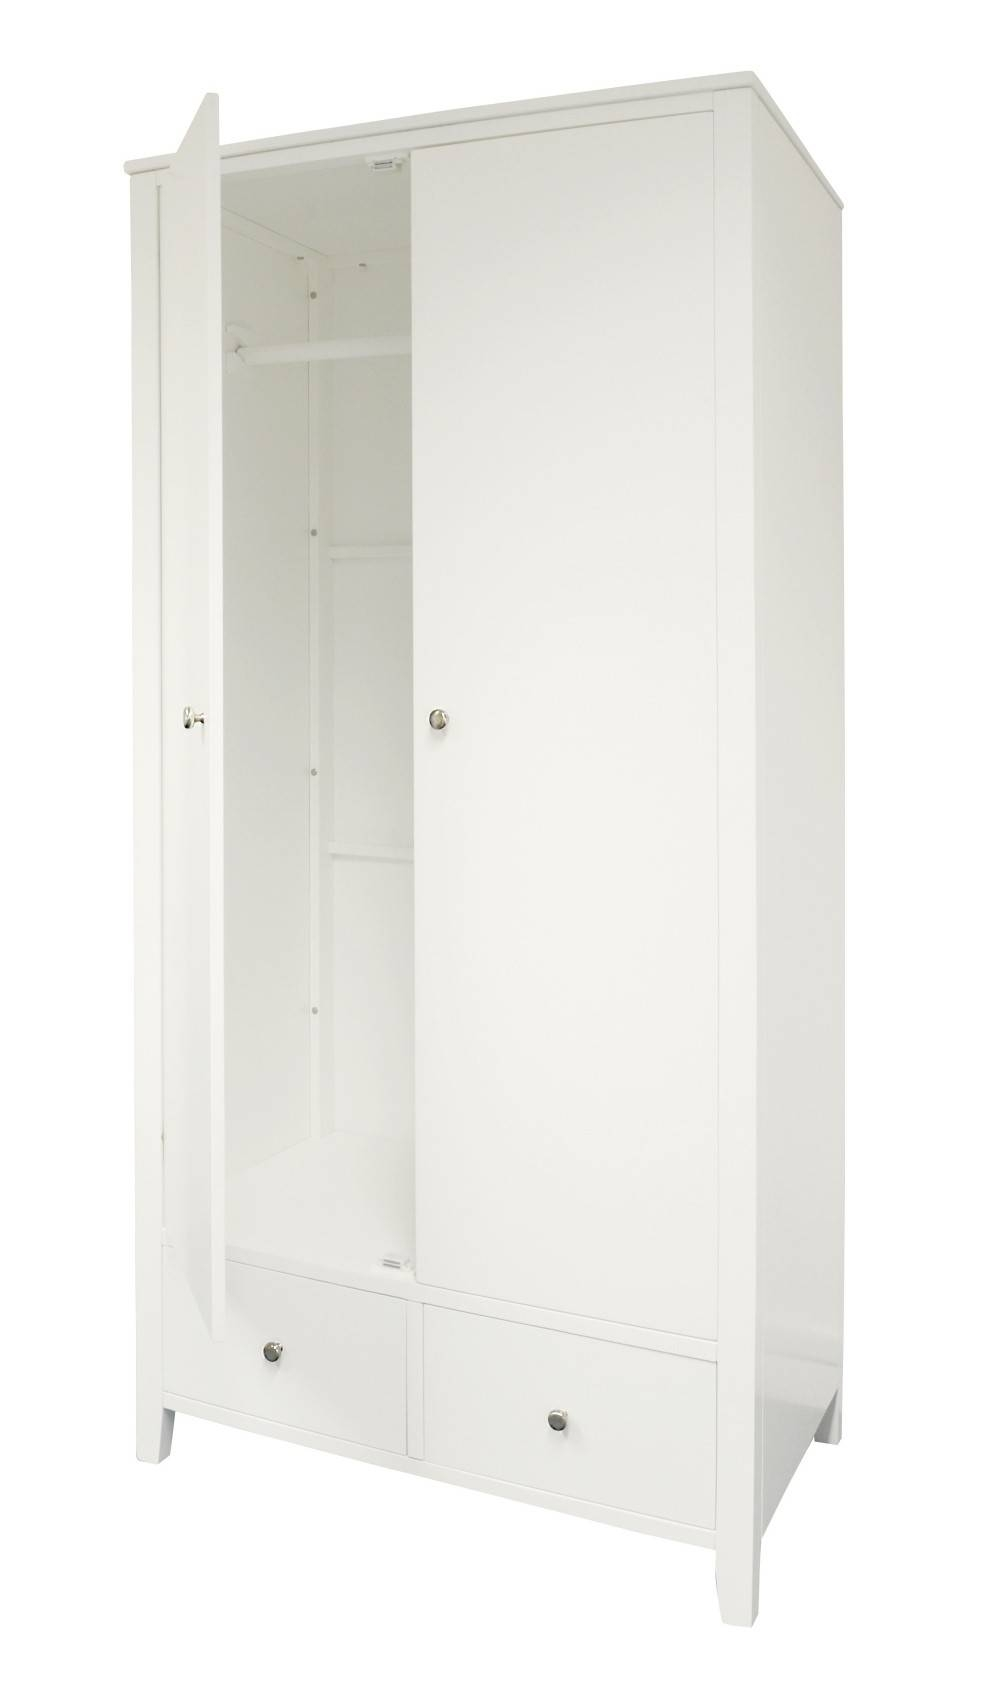 Brooklyn White Double Wardrobe With 2 Drawers| Bedroom Furniture with regard to White Double Wardrobes With Drawers (Image 4 of 15)